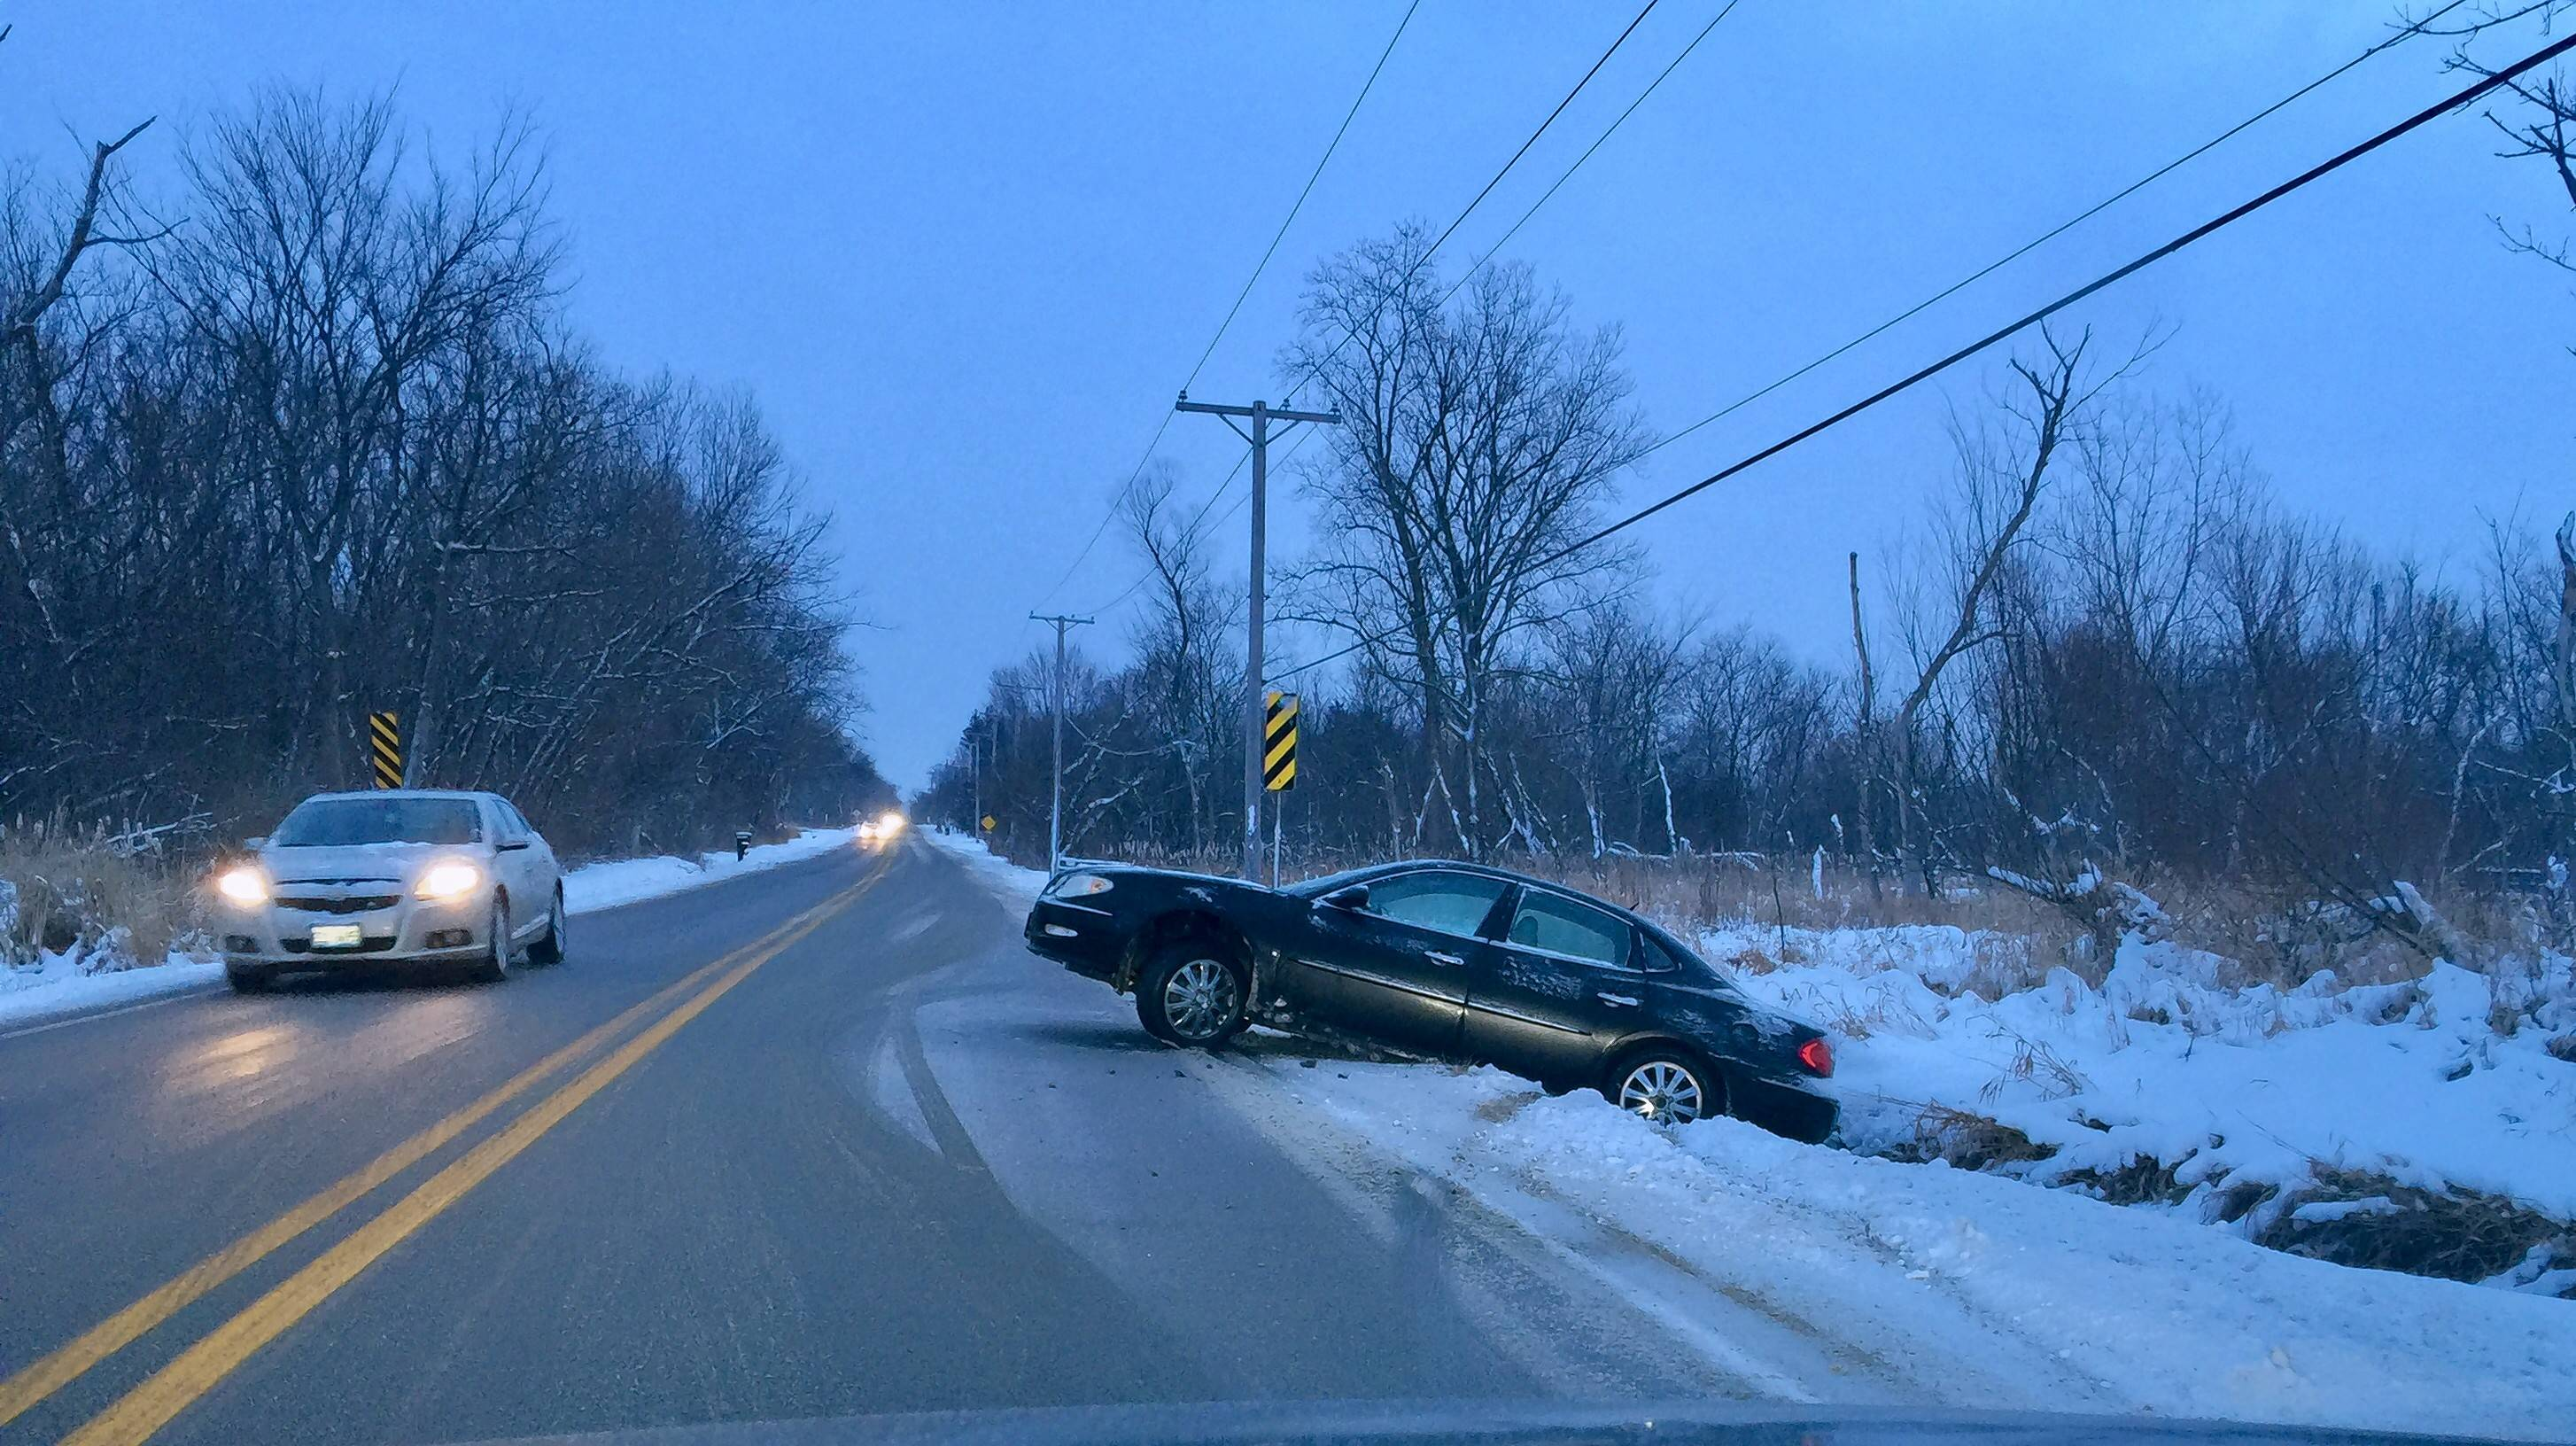 A car slid into a ditch Tuesday morning on Boncosky road just east of Sleepy Hollow Road near Sleepy Hollow.